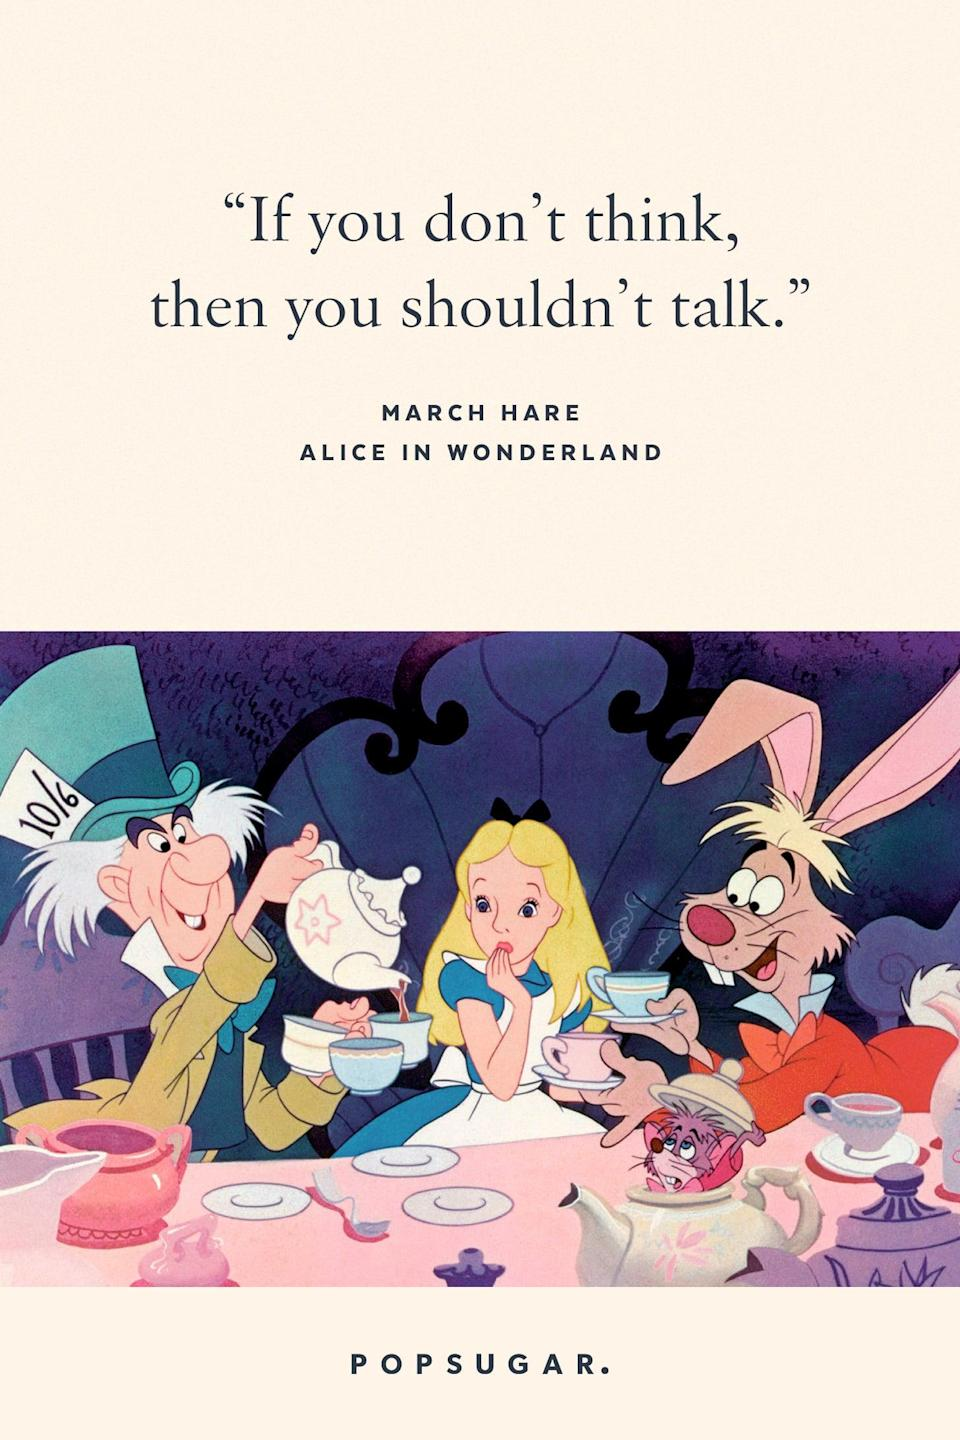 "<p>""If you don't think, then you shouldn't talk."" - March Hare, <b>Alice in Wonderland</b></p>"